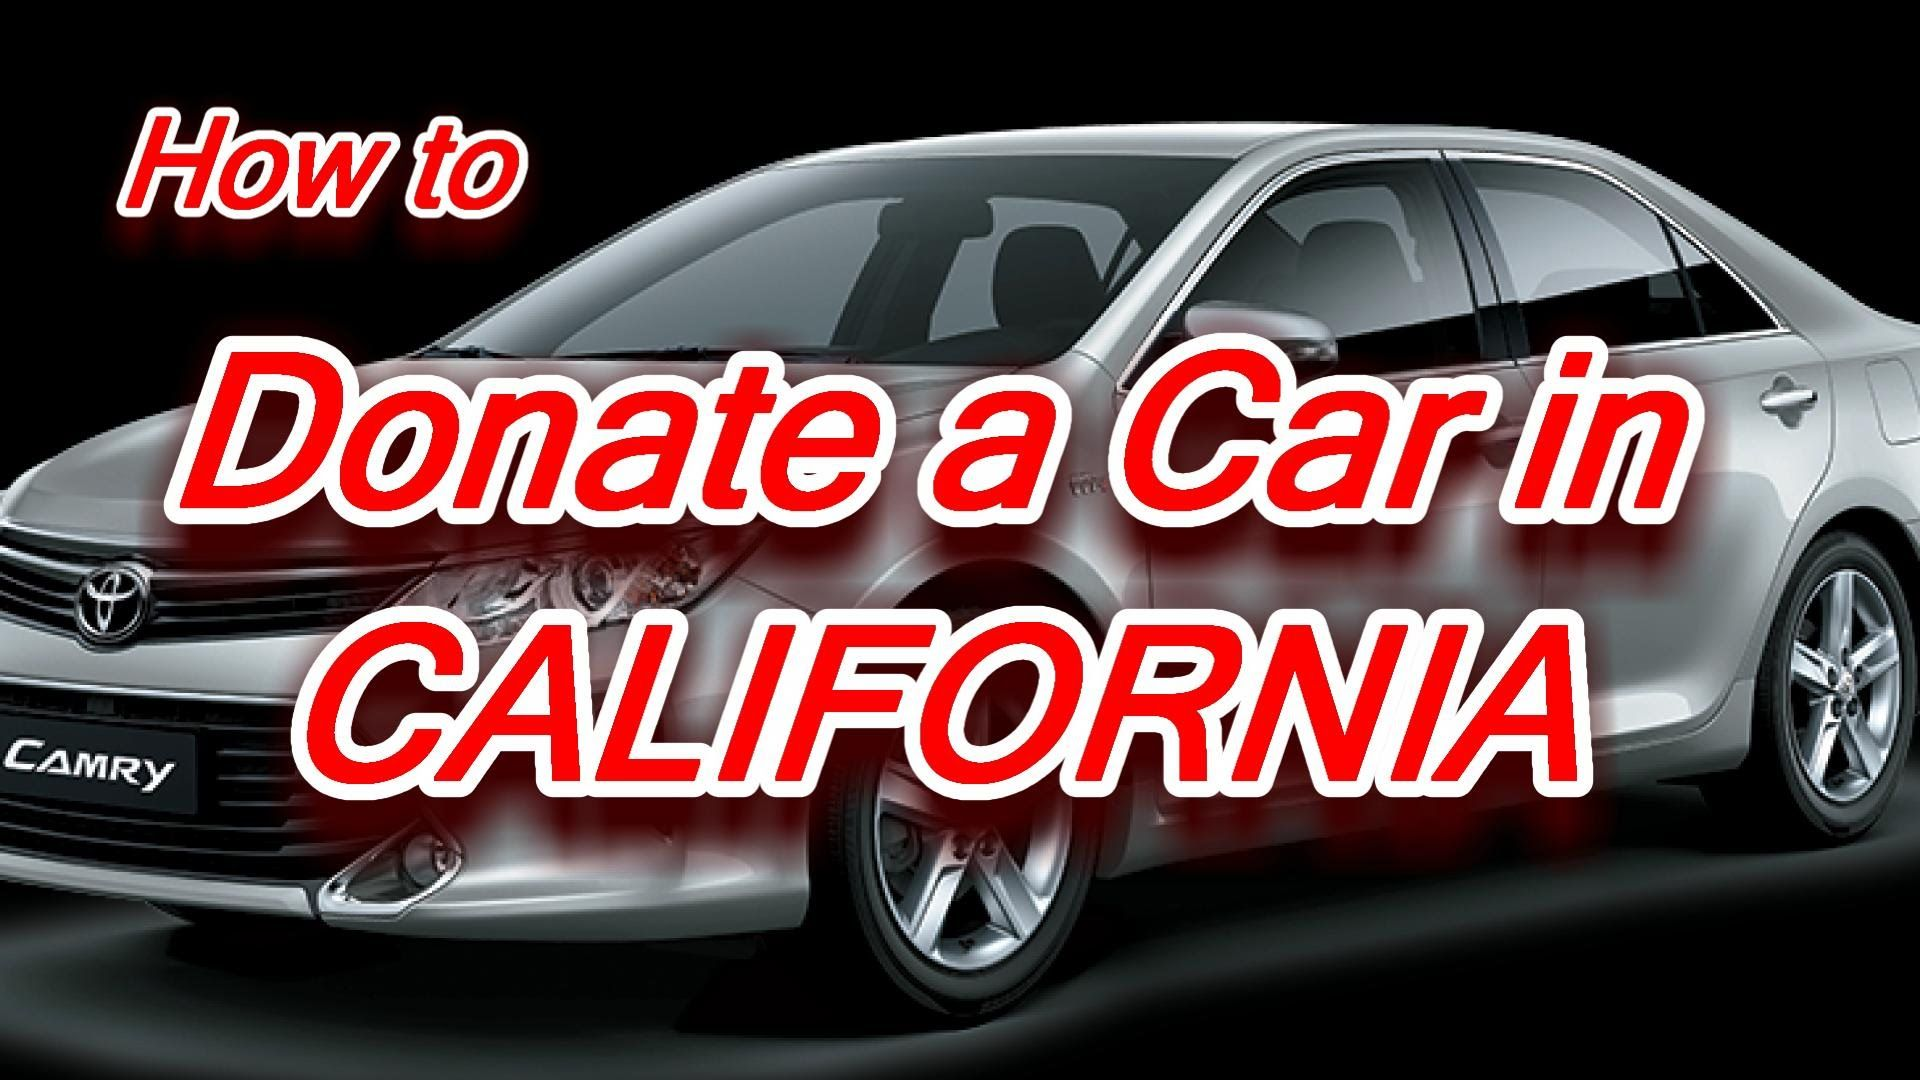 Donate car in california Donate your car, Donate car